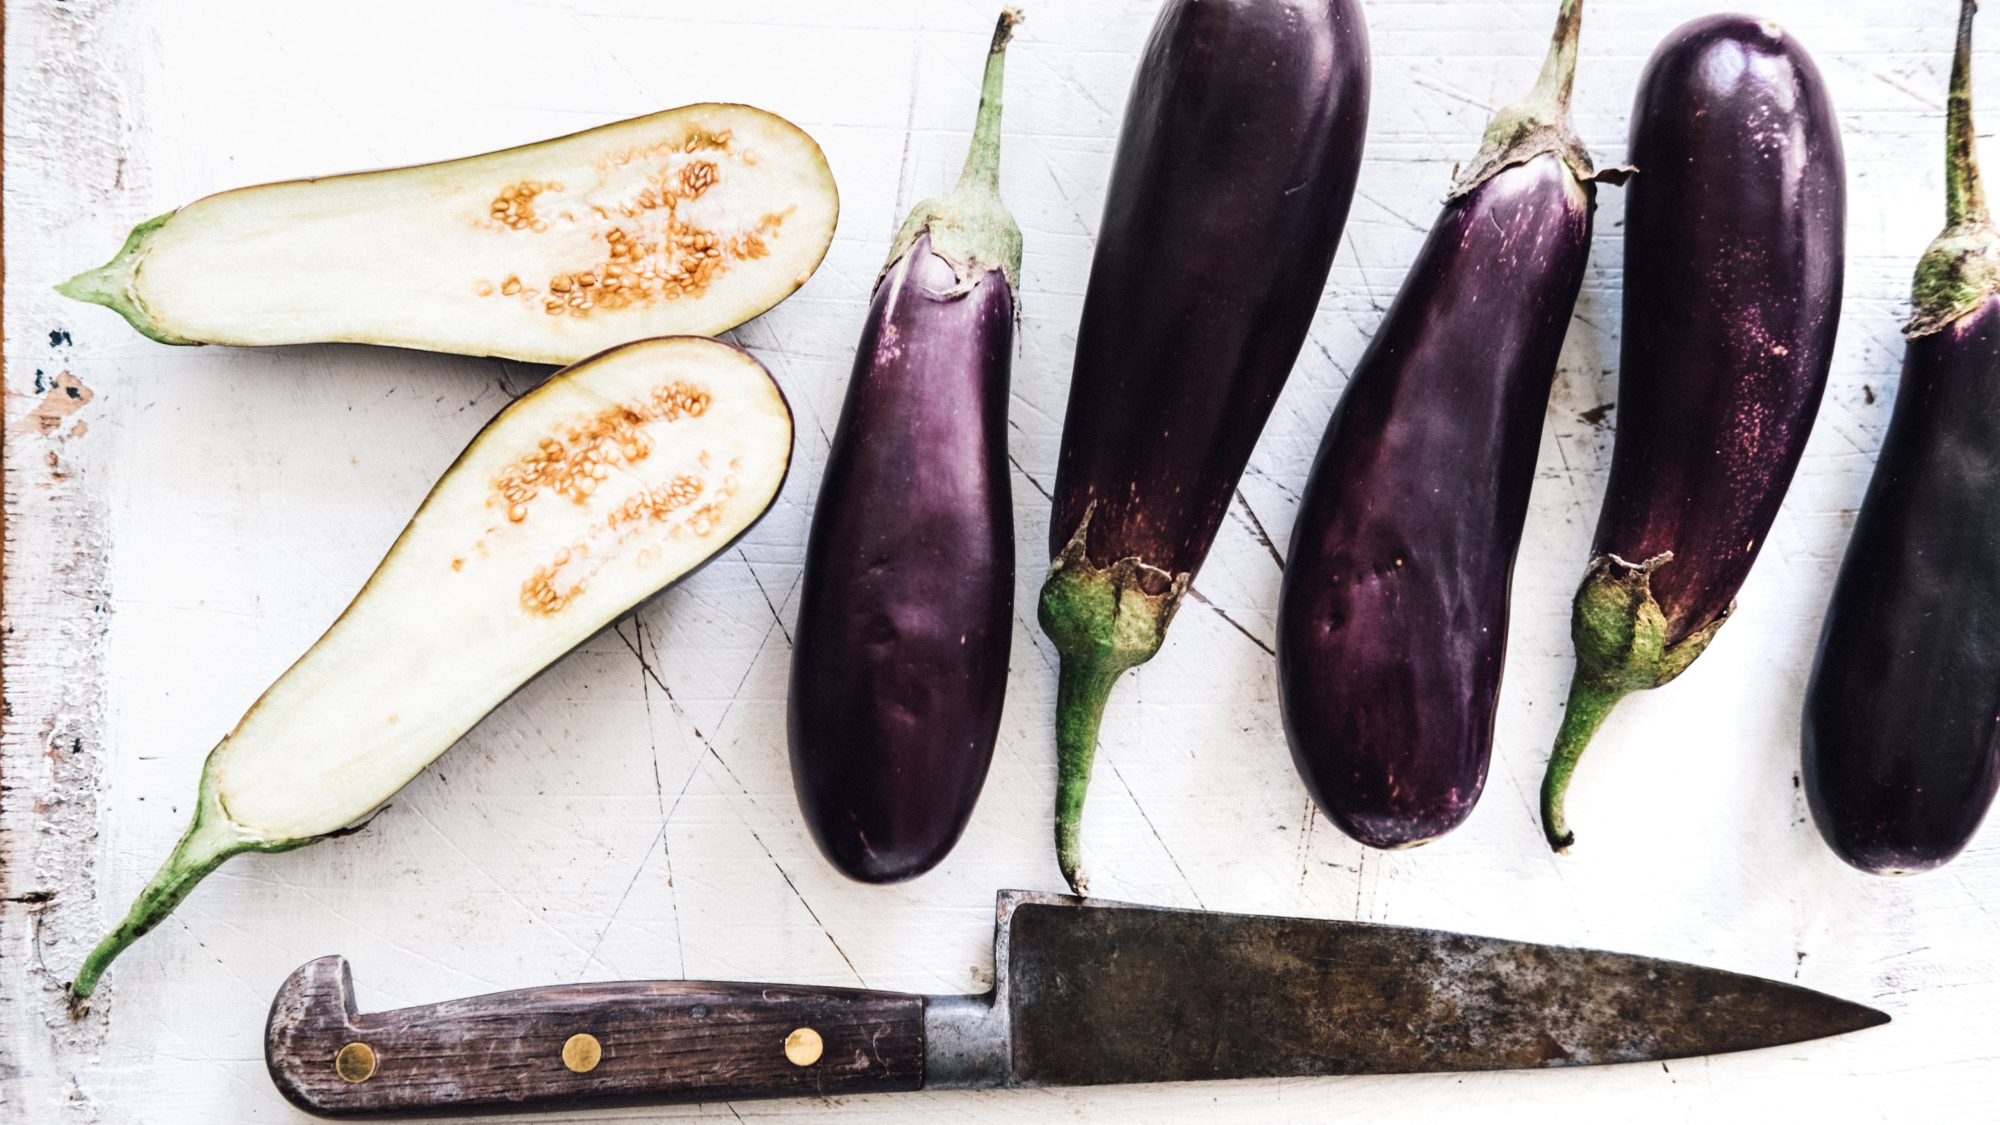 How to cook eggplant - guide and tips to cooking eggplant (eggplant)